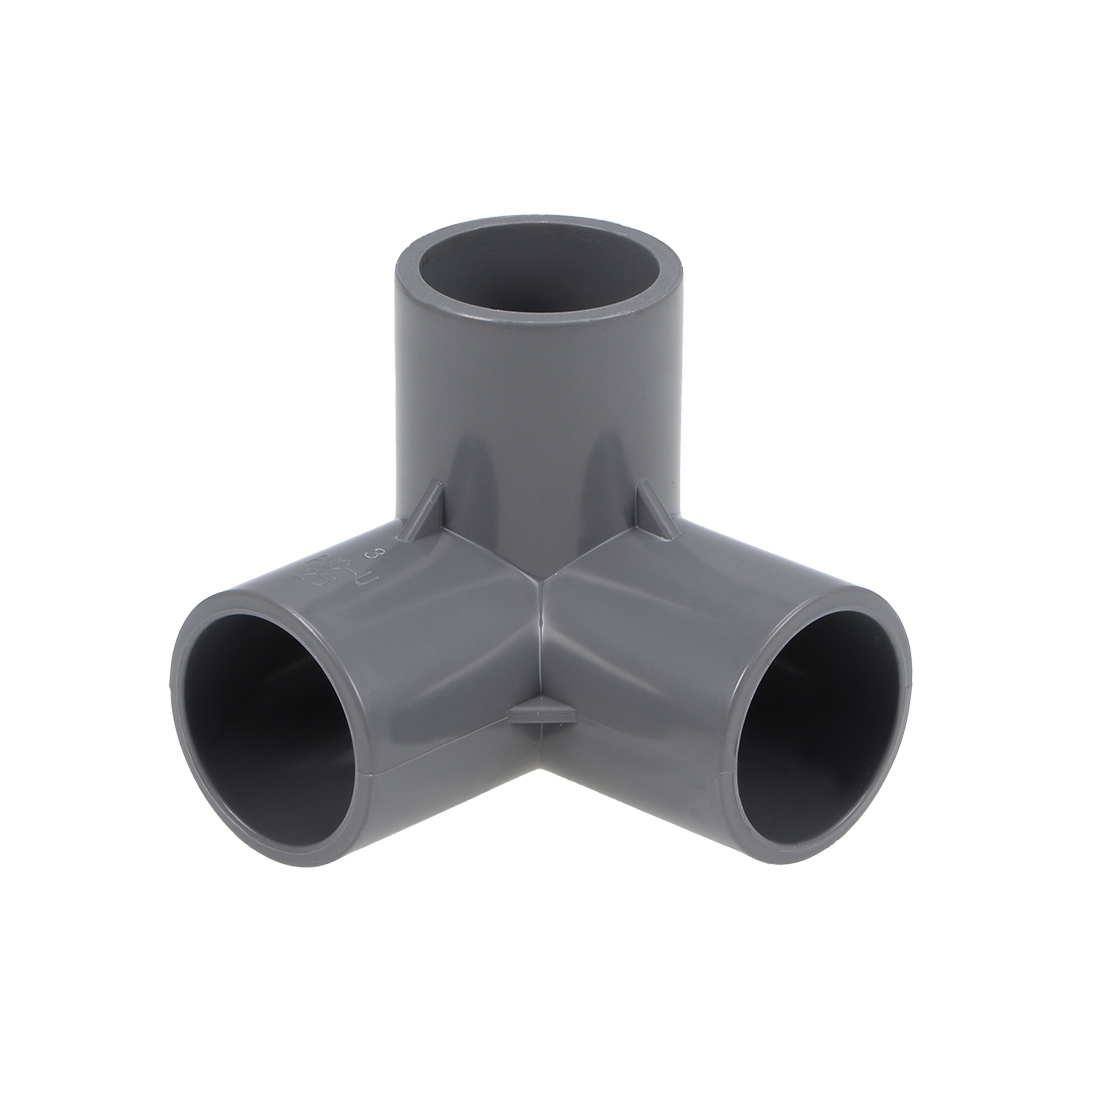 Uxcell 3-Way Elbow PVC Fitting, 25mm Socket, Tee Corner Fittings Gray 10Pcs